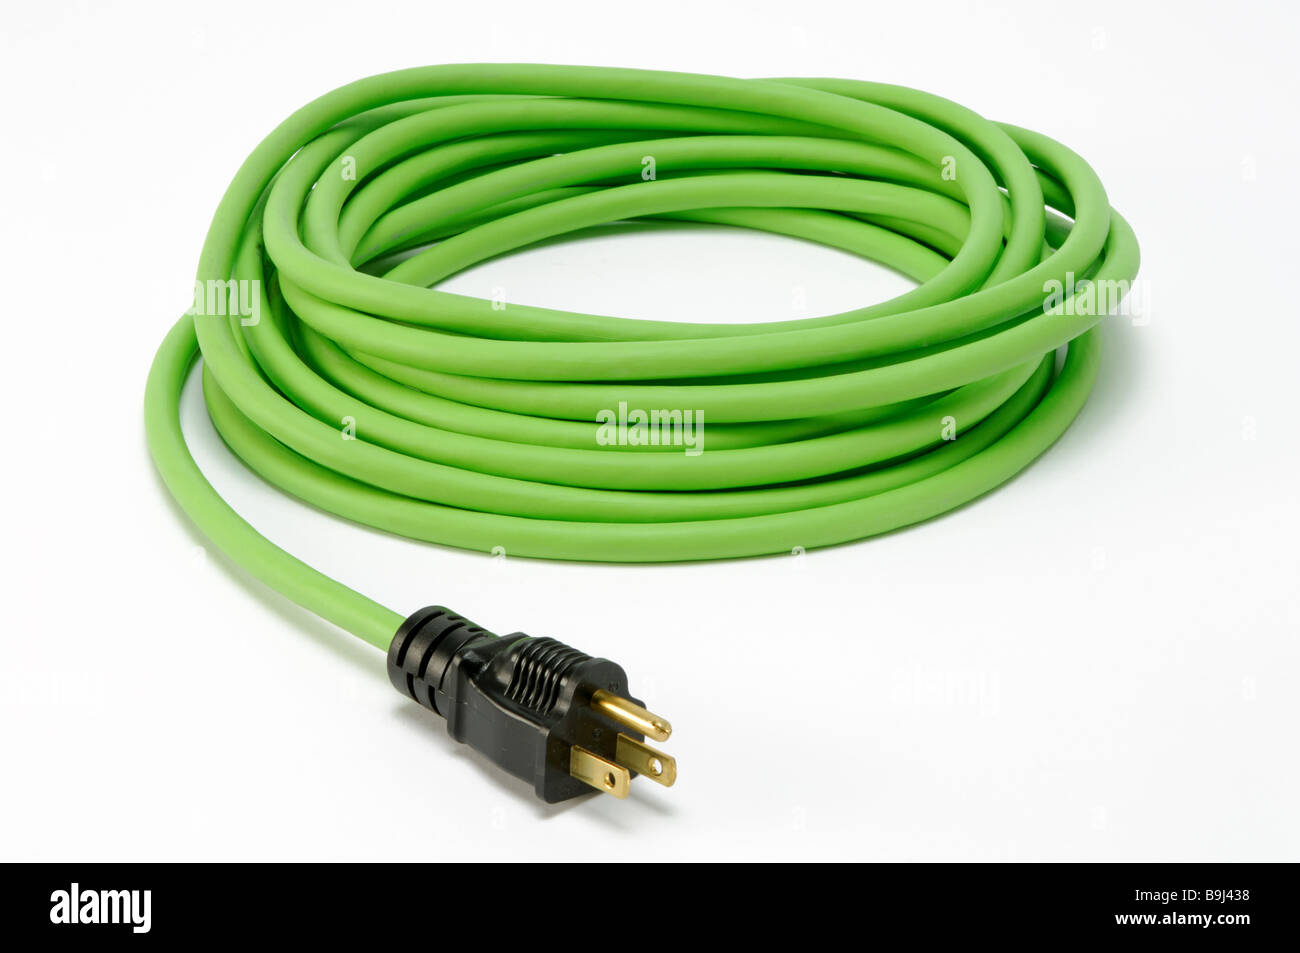 A coiled green electrical extension power cord with one plug - Stock Image